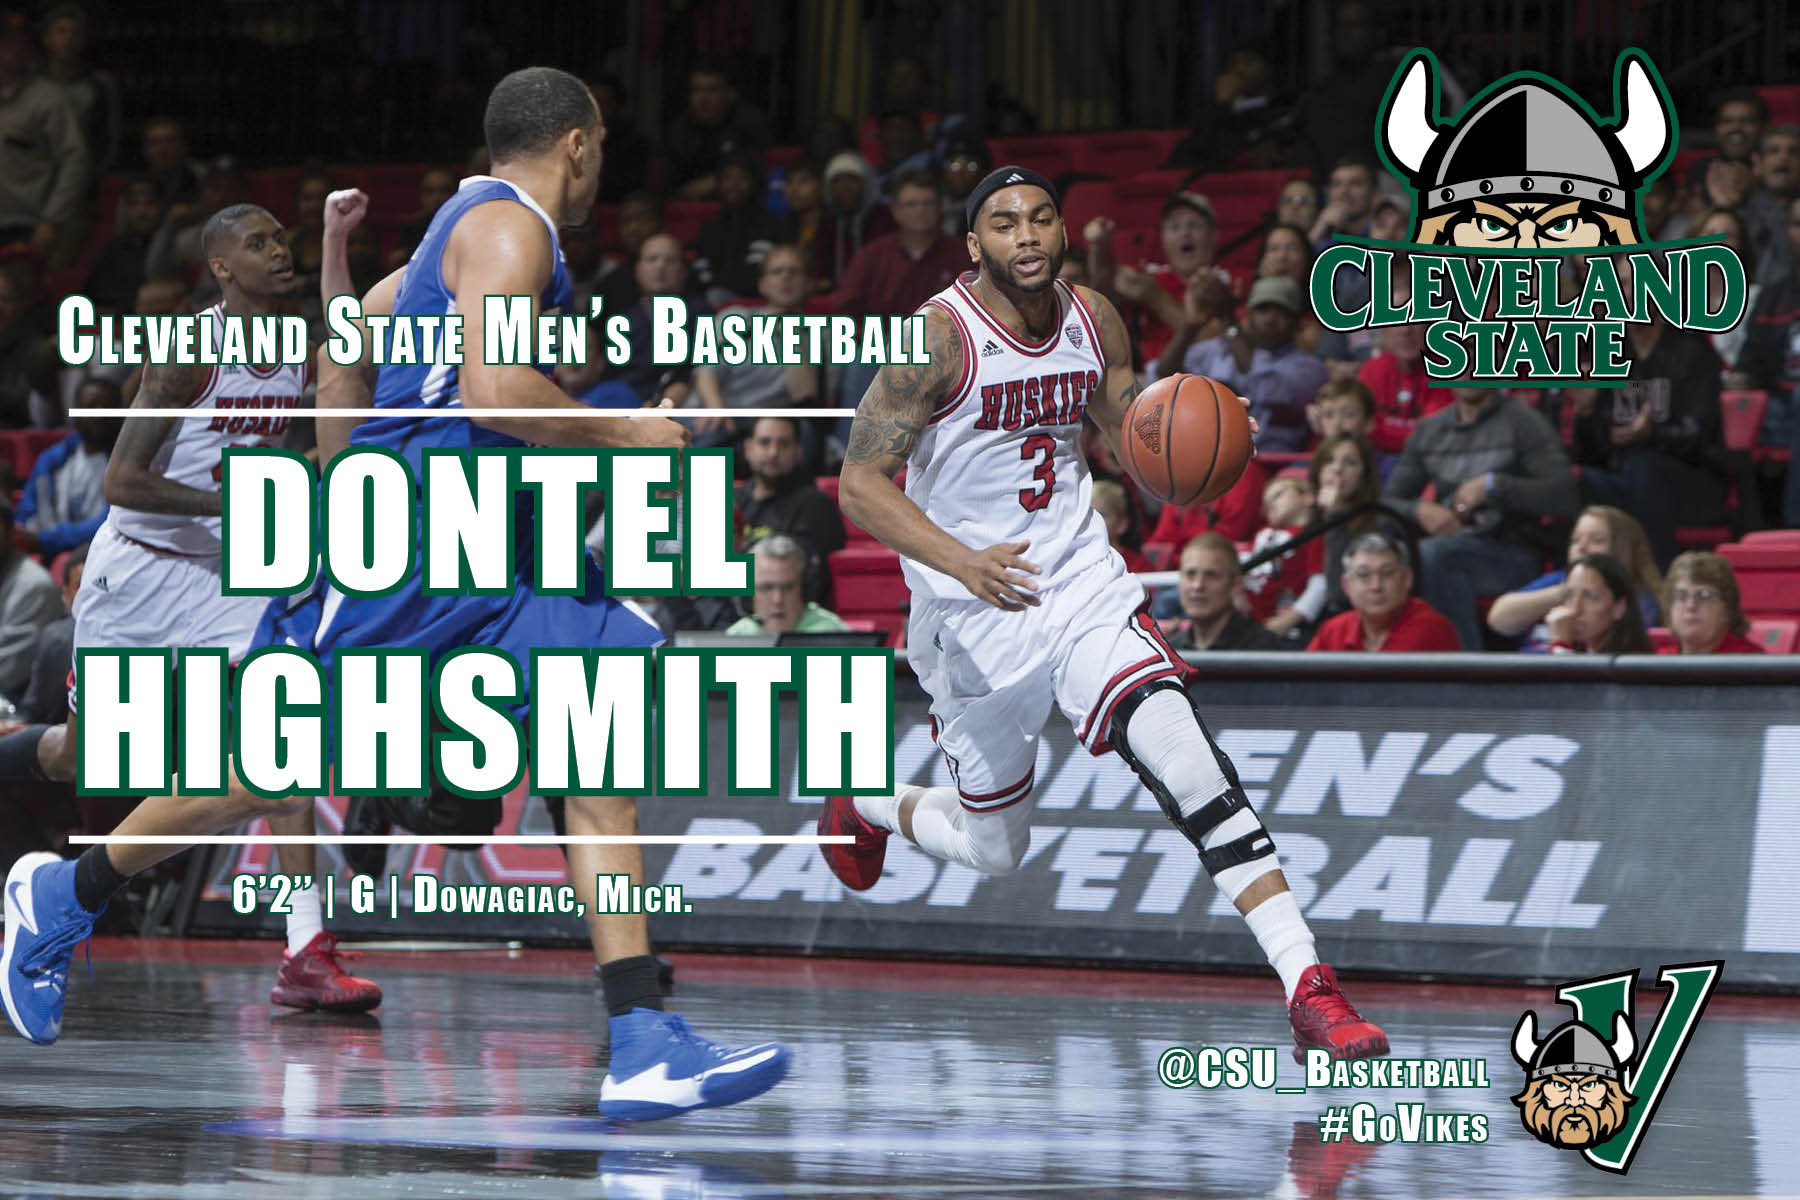 Dontel Highsmith Joins Cleveland State Basketball Program